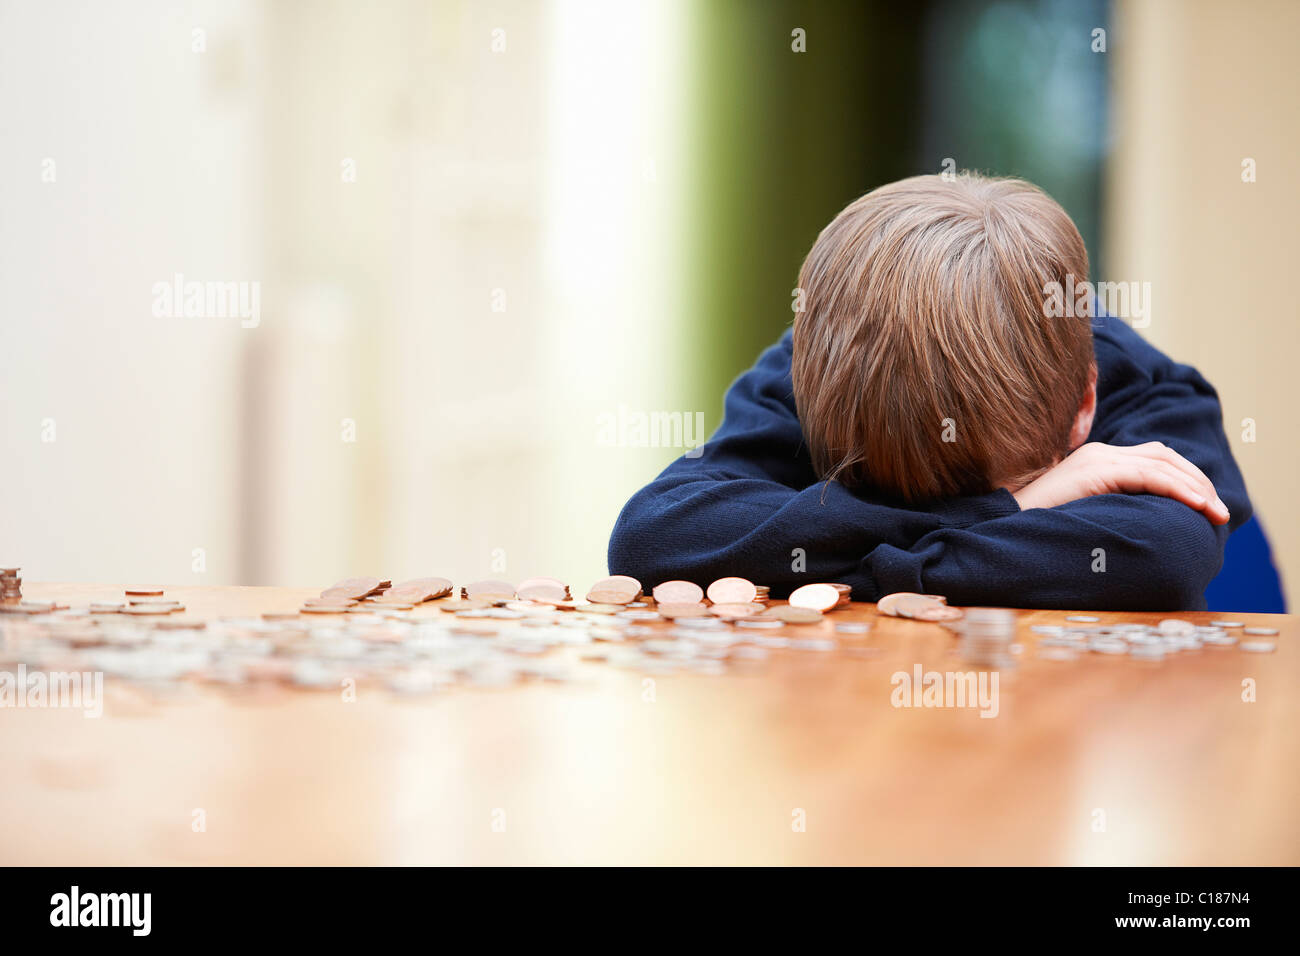 Boy head on arms surrounded by coins - Stock Image